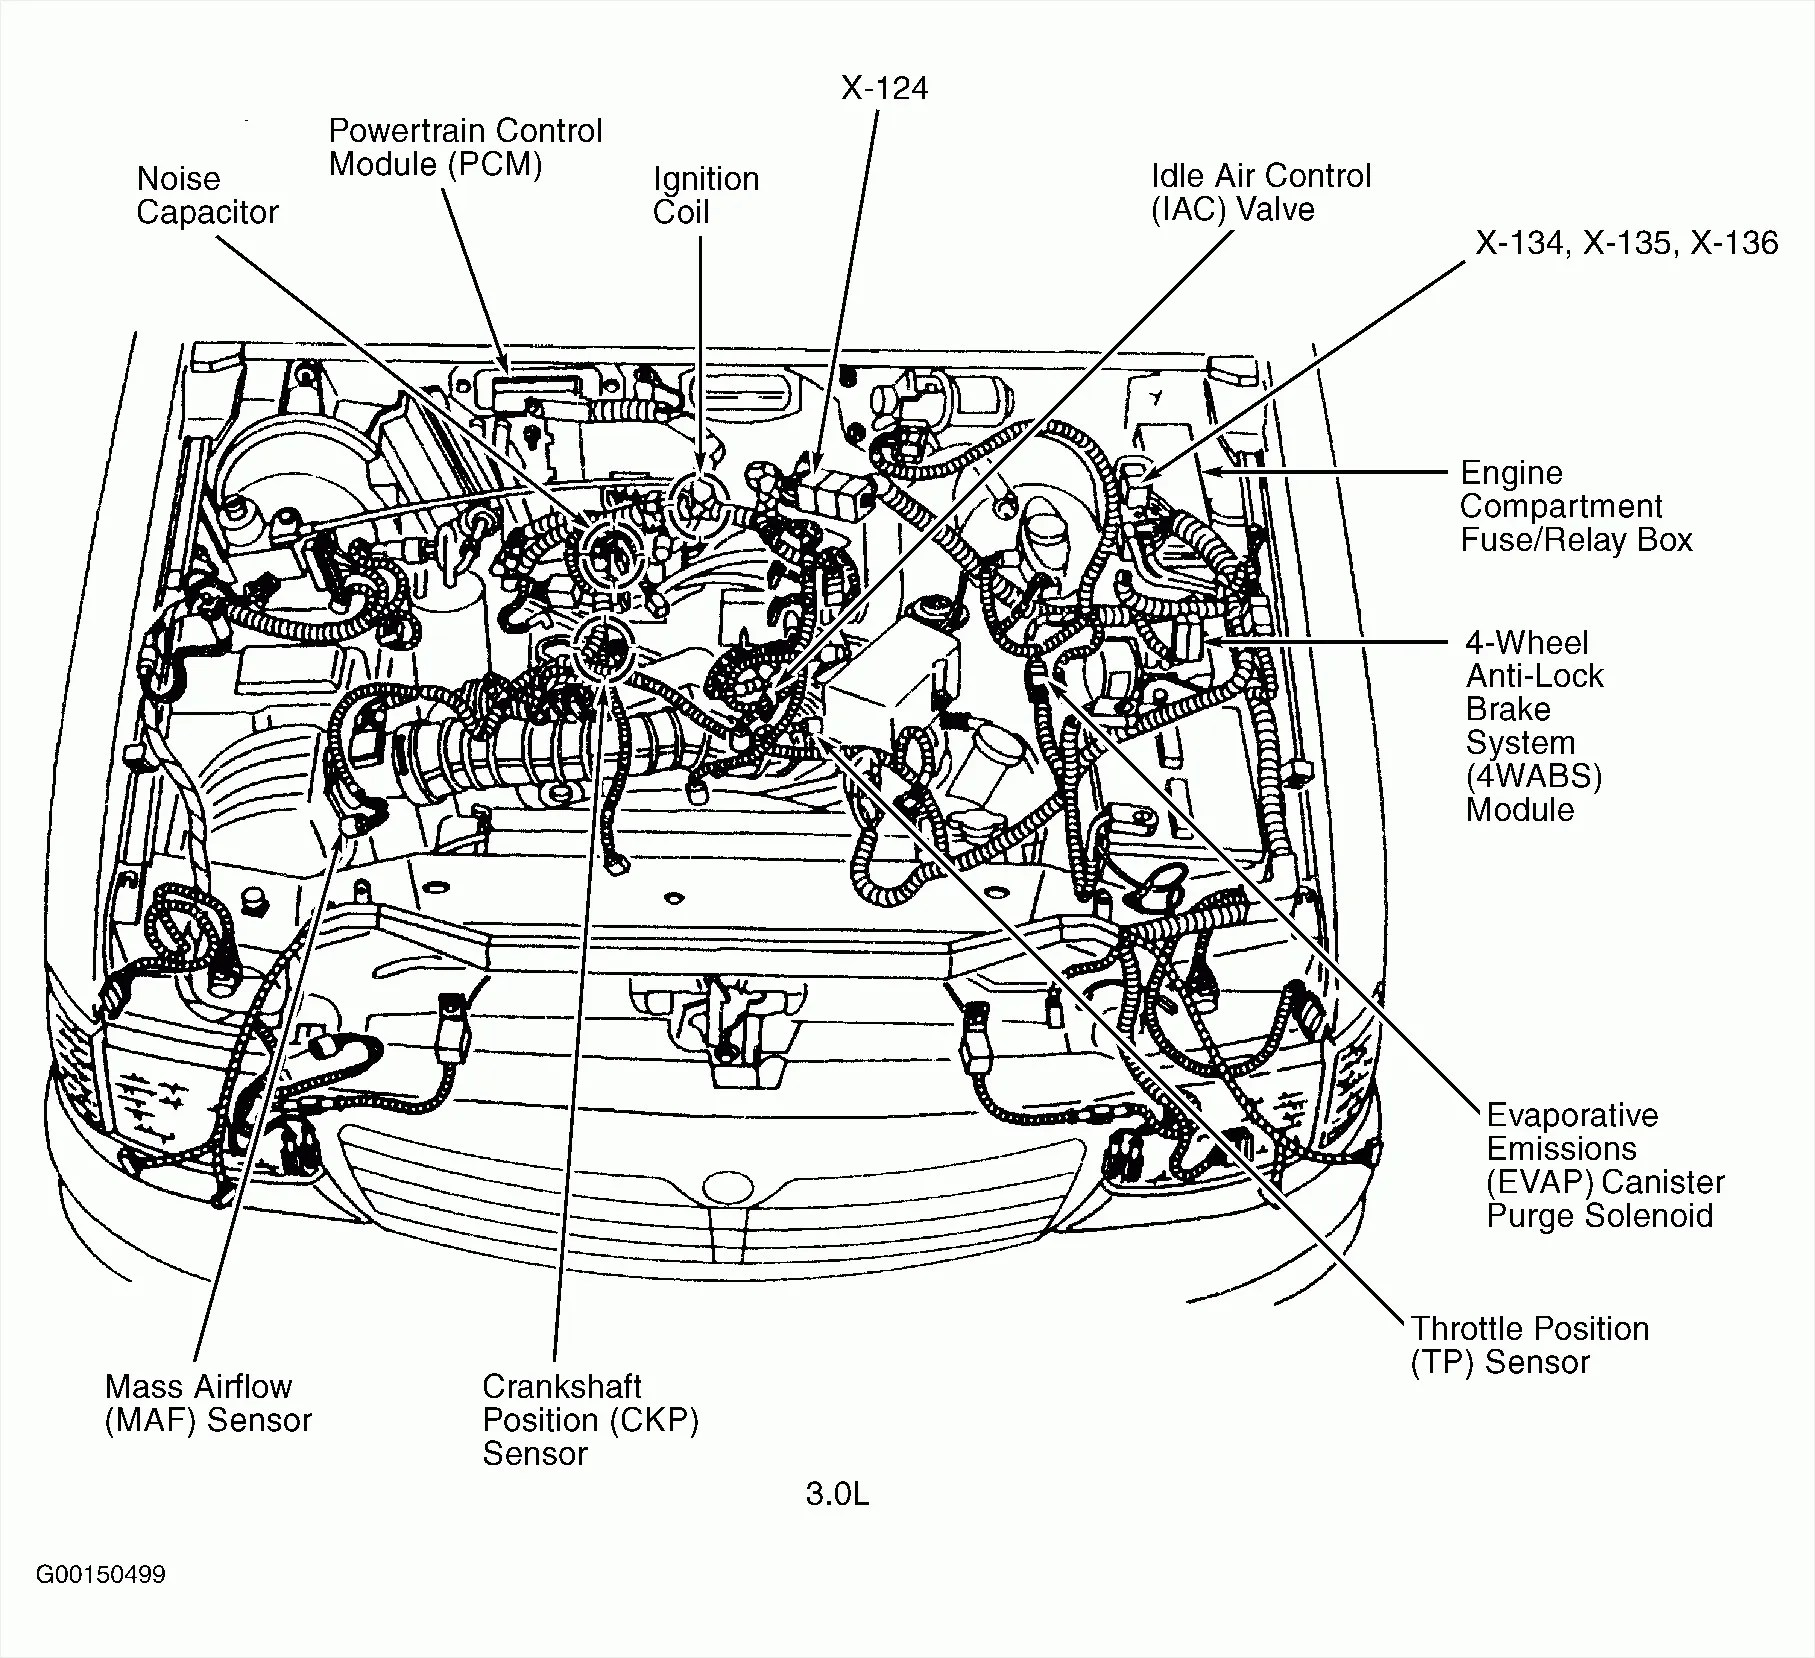 hight resolution of wrg 1822 2003 mini cooper s engine diagram 2009 mini cooper engine parts diagram in addition colorado wiring